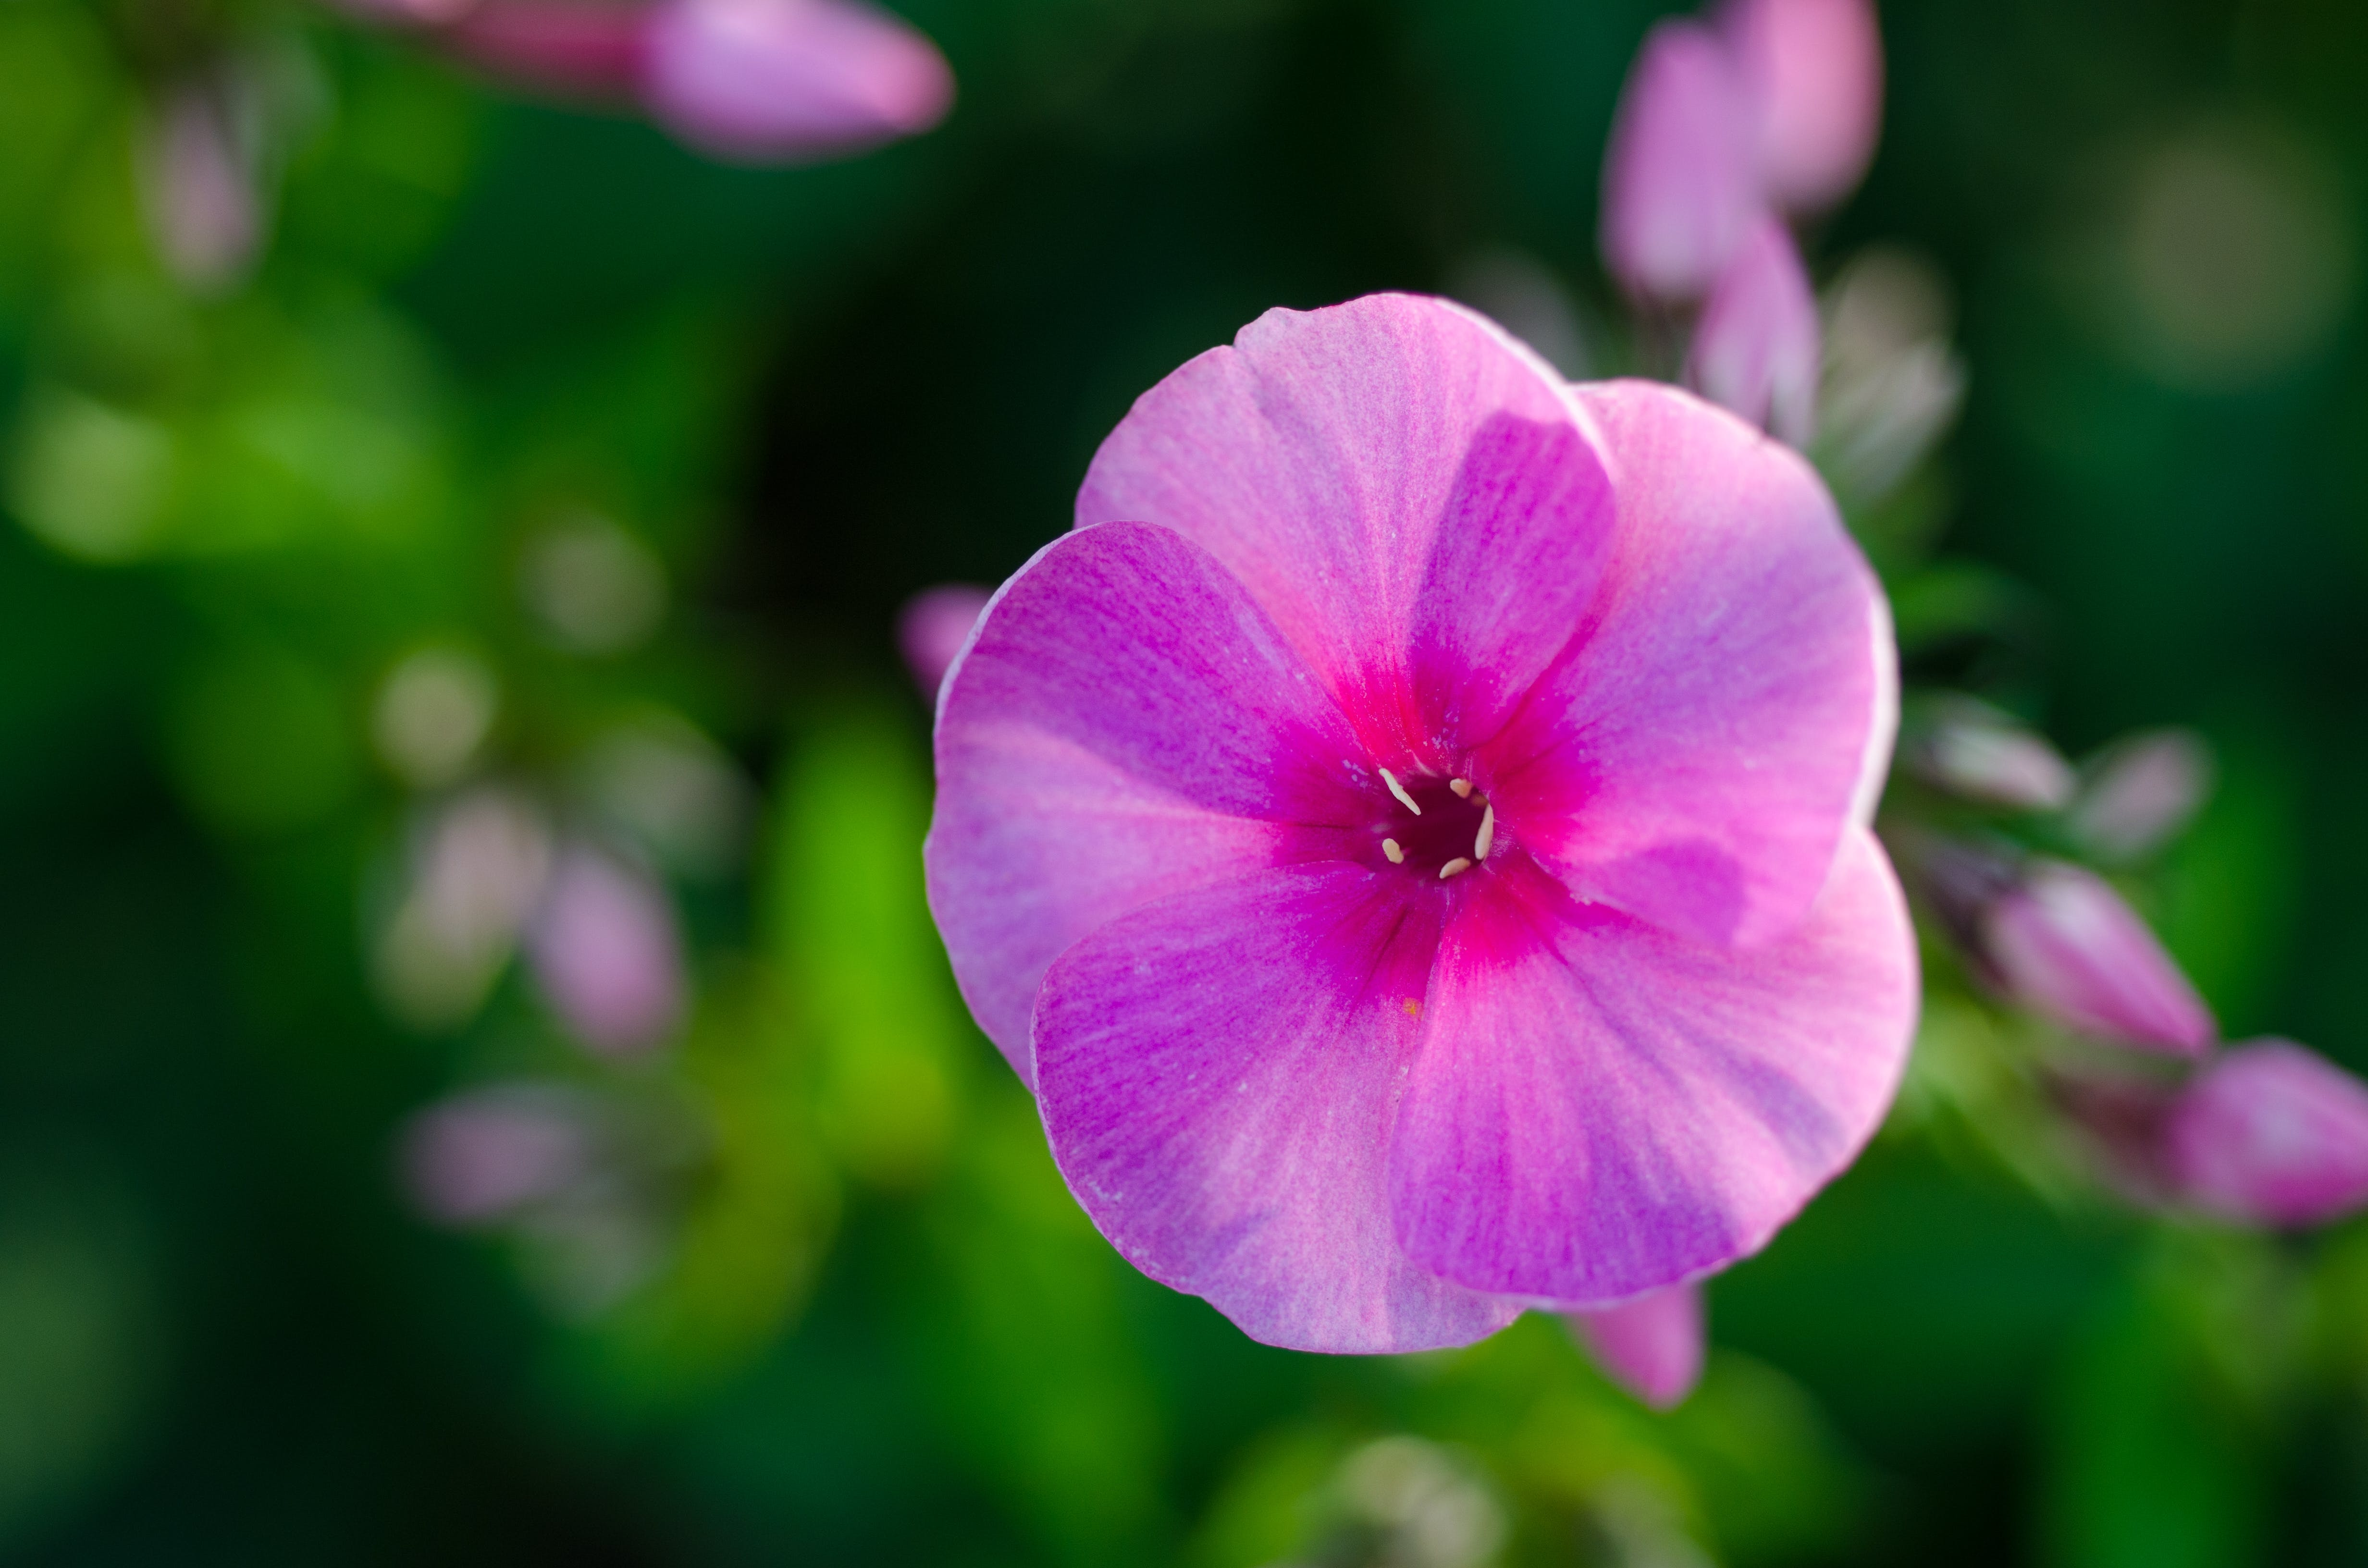 Selective Focus Photograph of Pink Petaled Flower